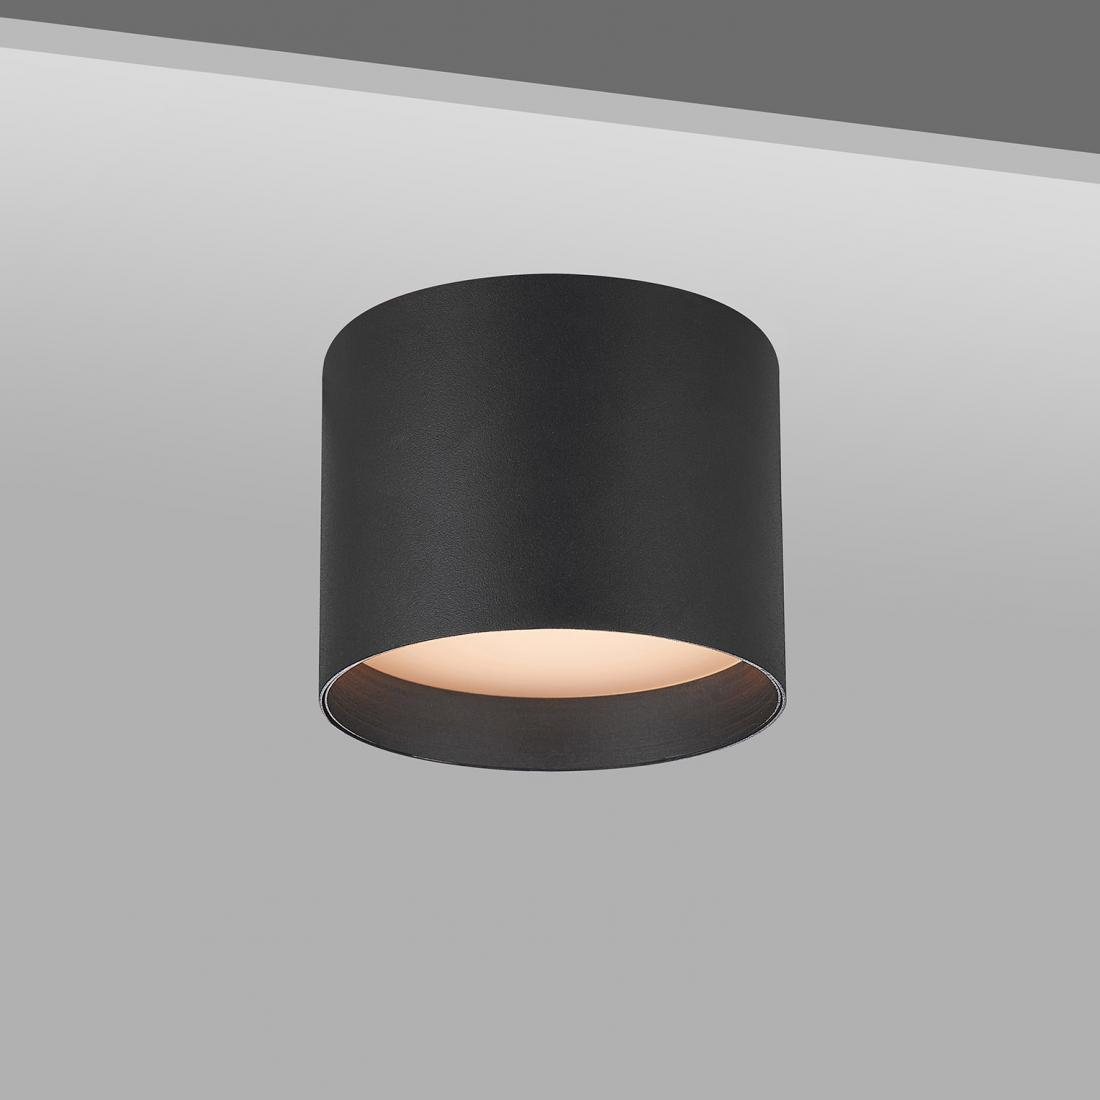 Indoor ceiling light